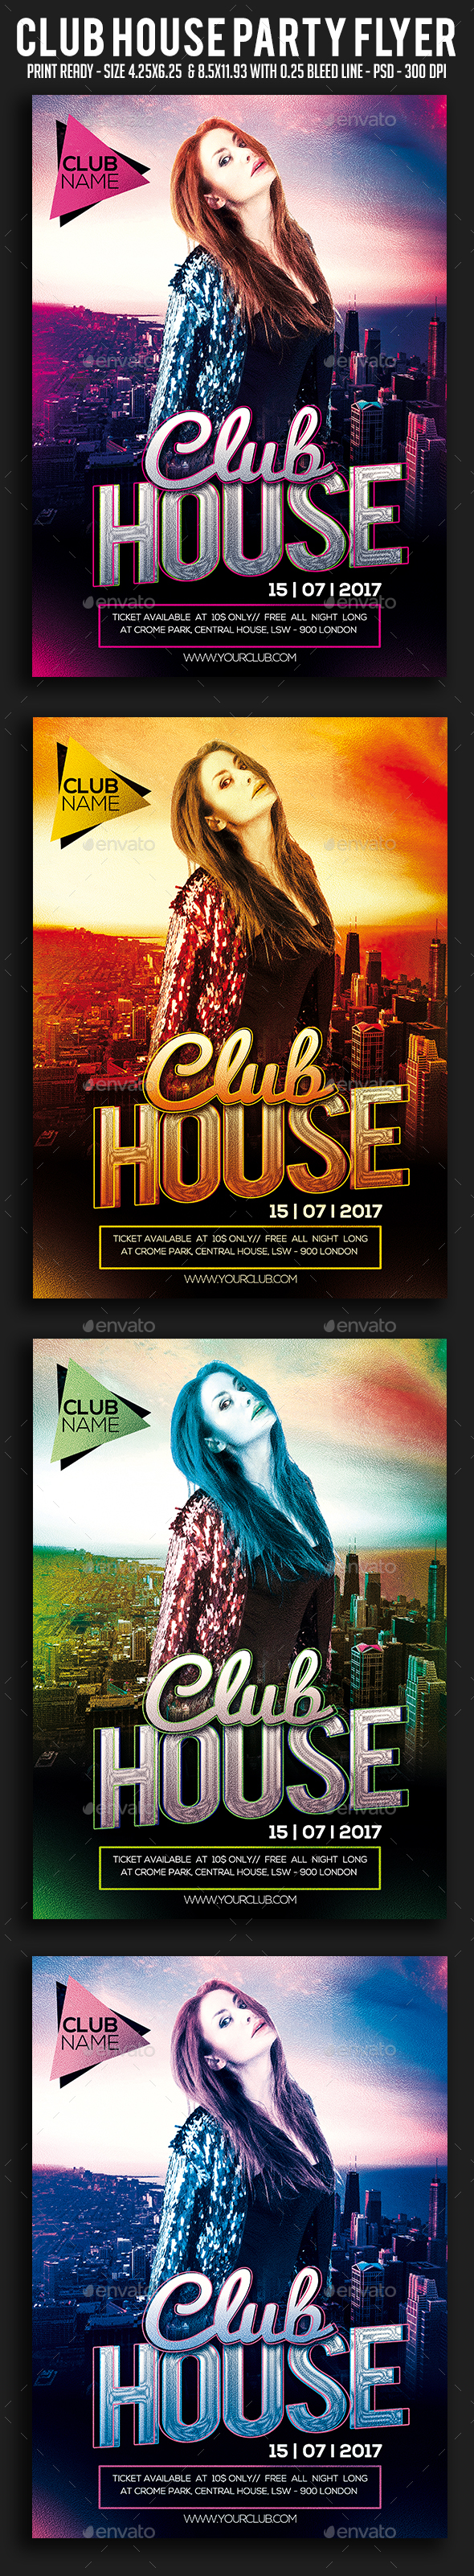 Club House Party Flyer - Clubs & Parties Events